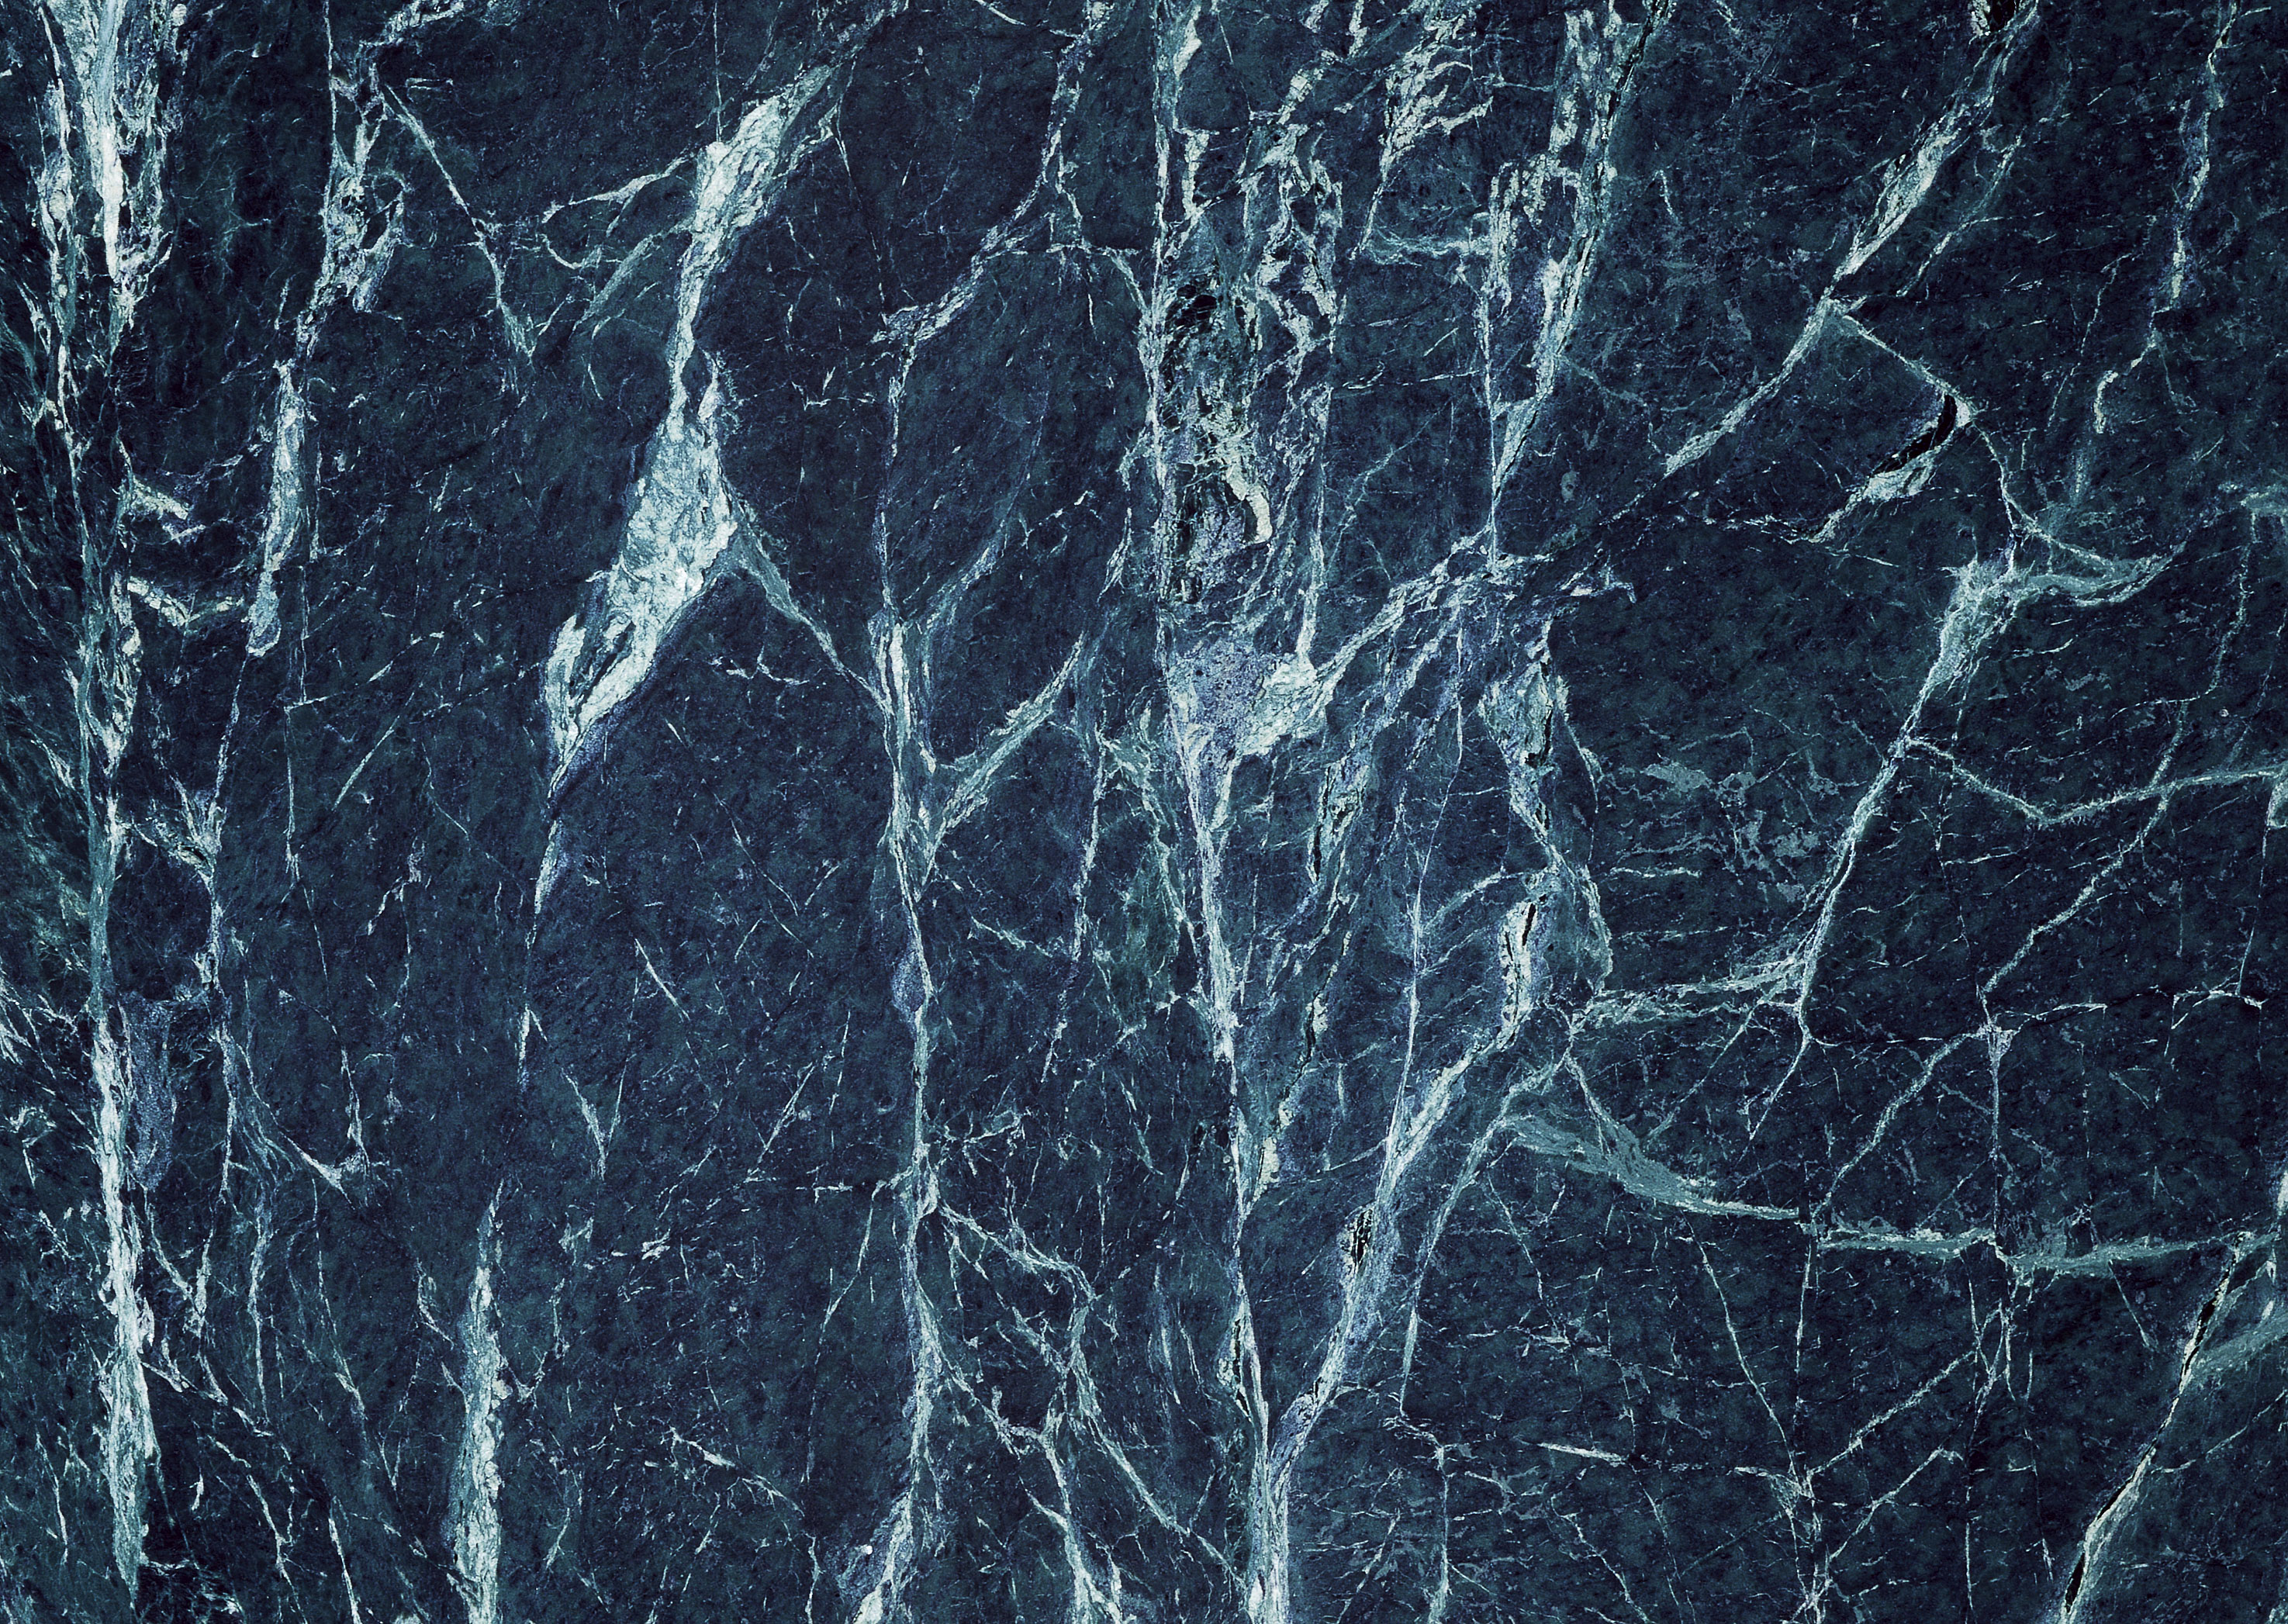 Marble Stone Background : Marble texture background image